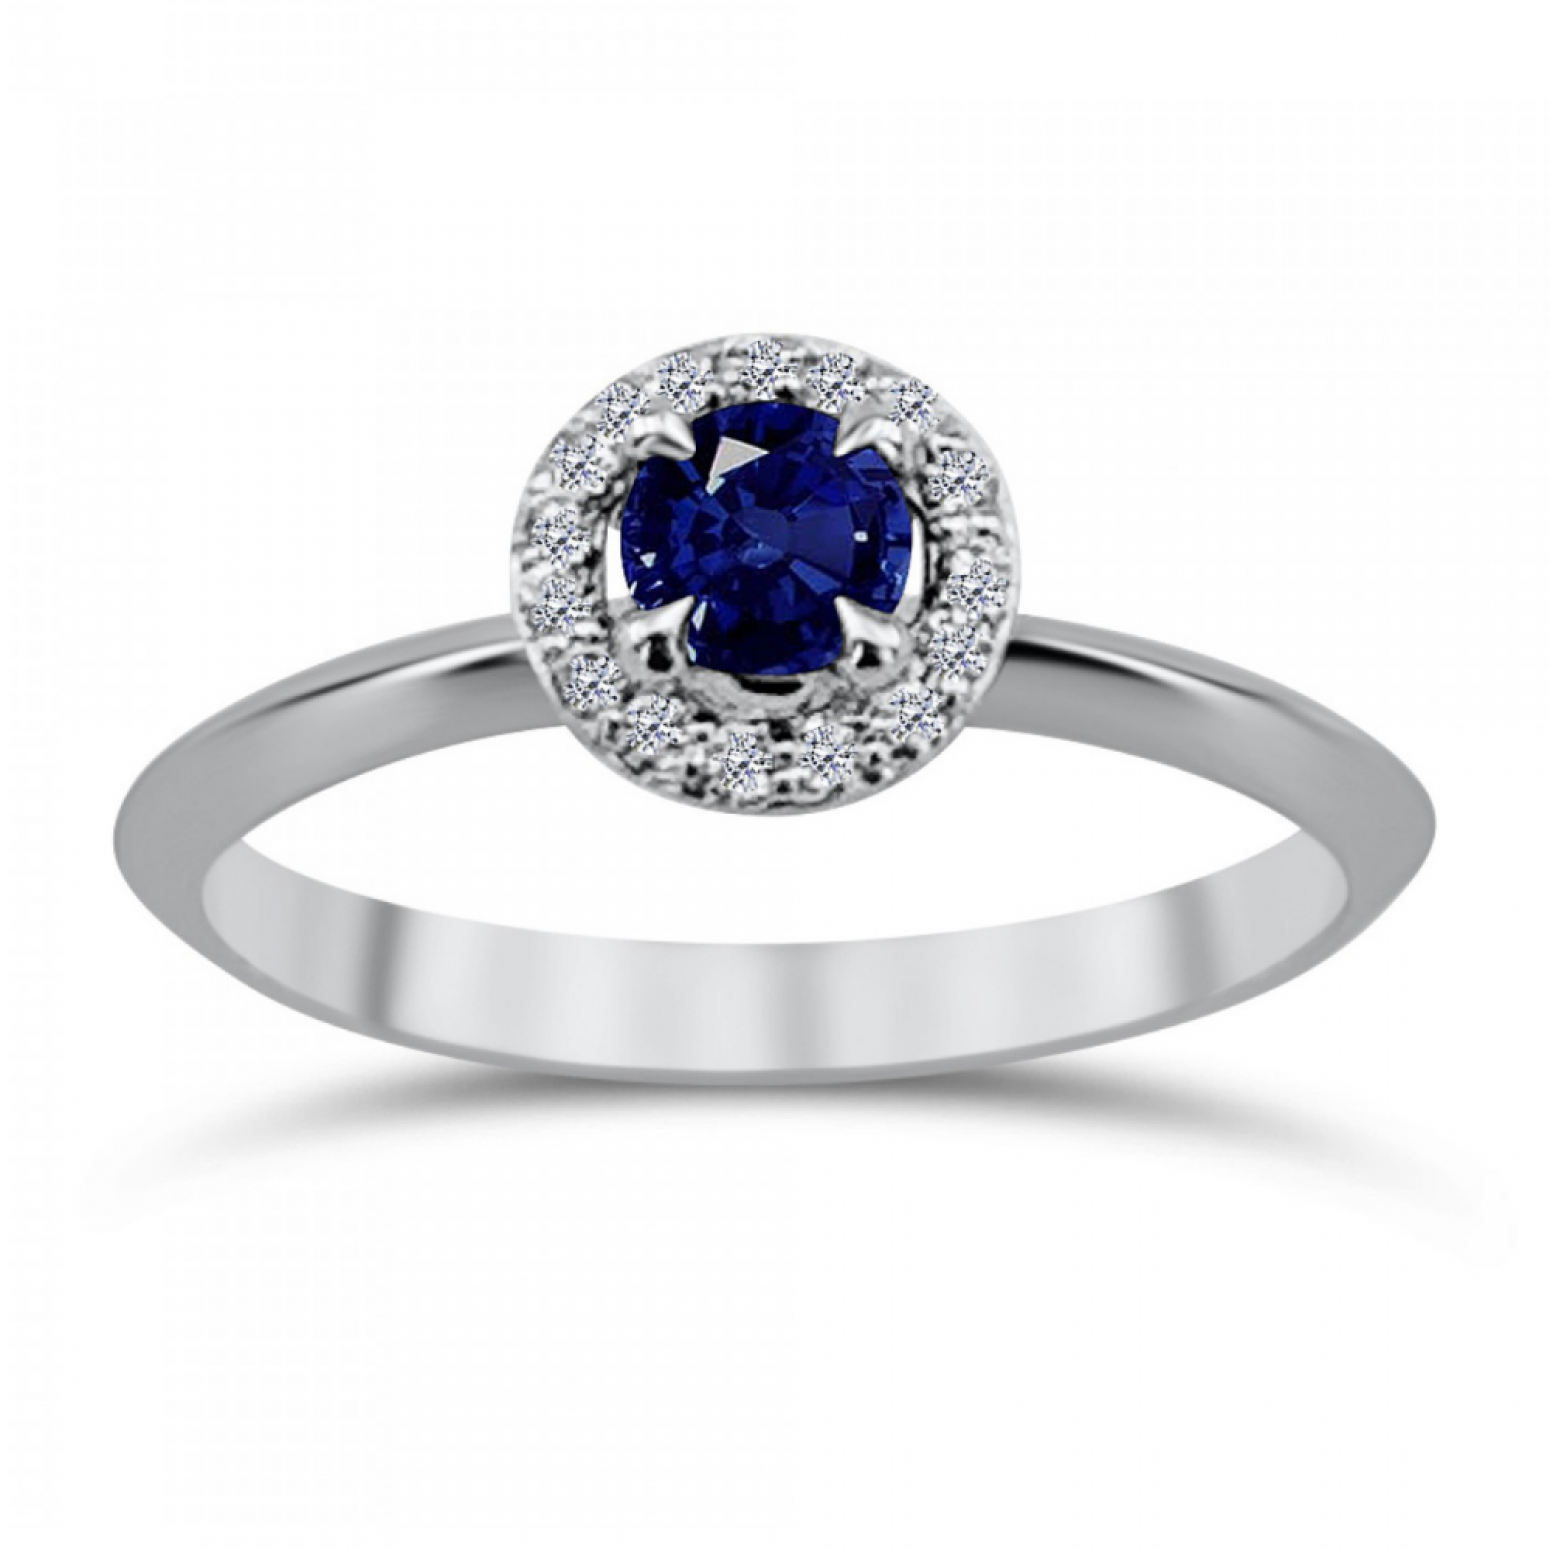 Solitaire ring 18K white gold with sapphire 0.37ct and diamonds, VS1, G da3797 ENGAGEMENT RINGS Κοσμηματα - chrilia.gr